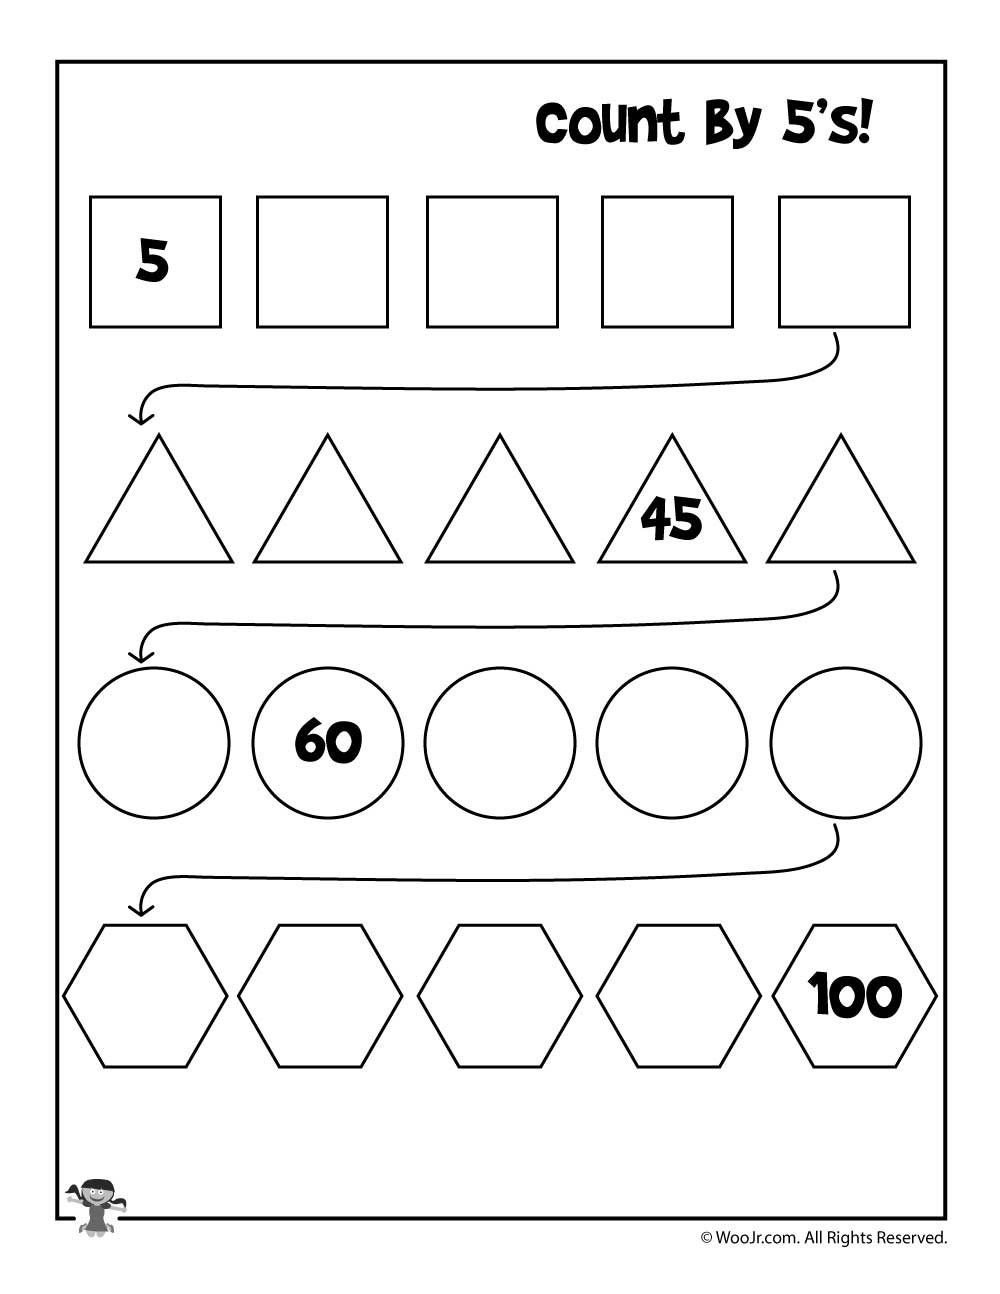 Skip Counting Worksheets 3rd Grade Printable Skip Count by 5 Worksheet for Kids Worksheet Ideas